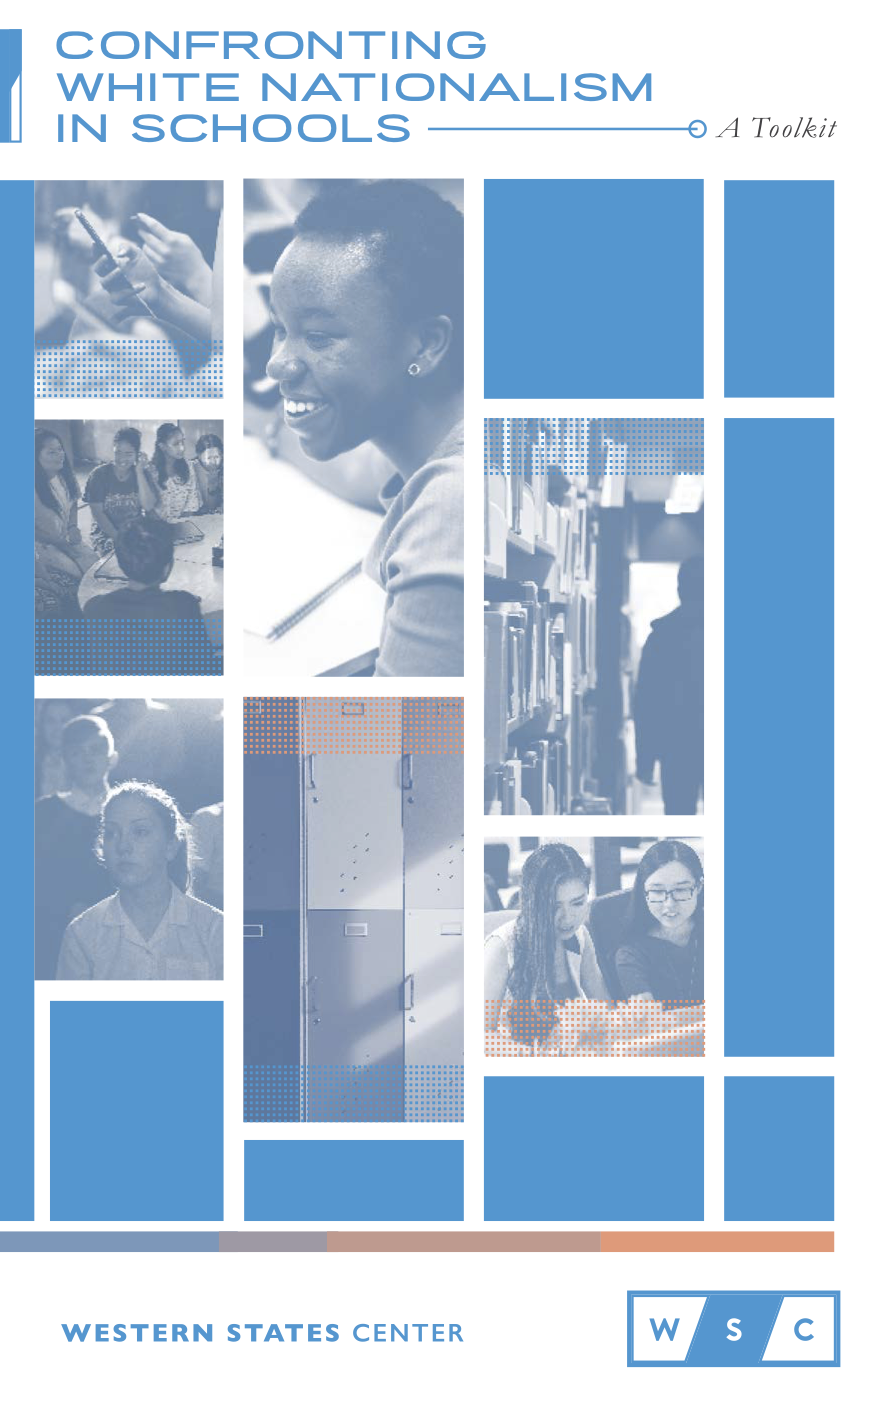 Second Edition Available Now! - Everyone who engages in the life of a school is in a unique position to isolate and push back against the growing white nationalist movement and its hateful narratives. We can build schools where everyone feels valued, and where students grow to be engaged citizens of an inclusive democracy.